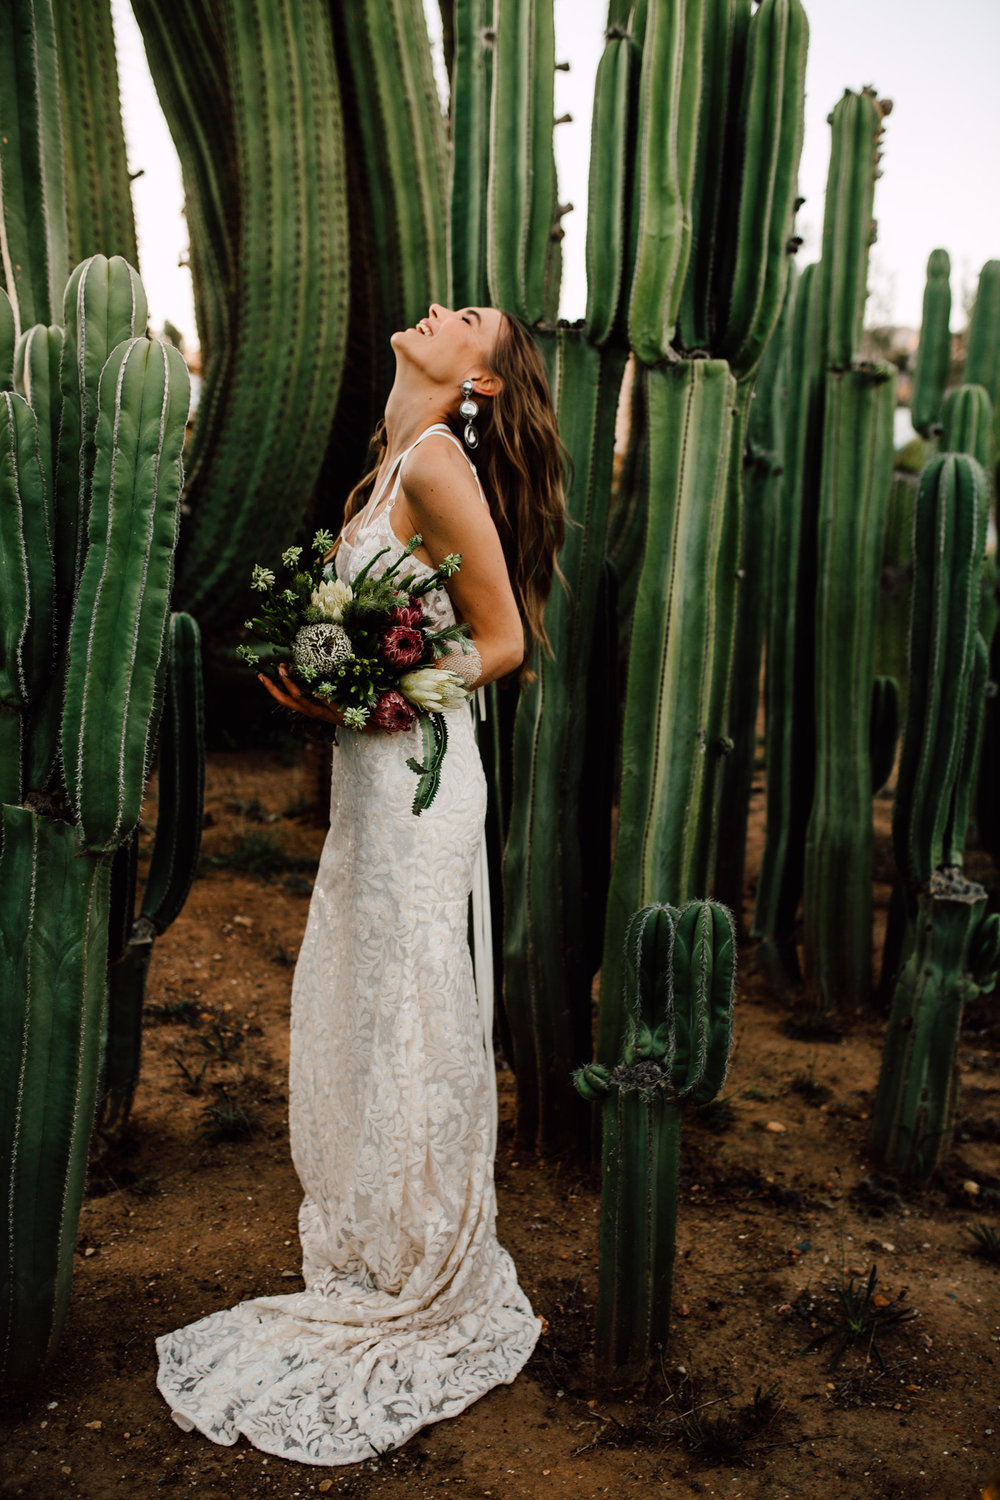 Cape-Town-Pia-Anna-Christian-Wedding-Photography-South-Africa-Bride-Cactus-15.jpg